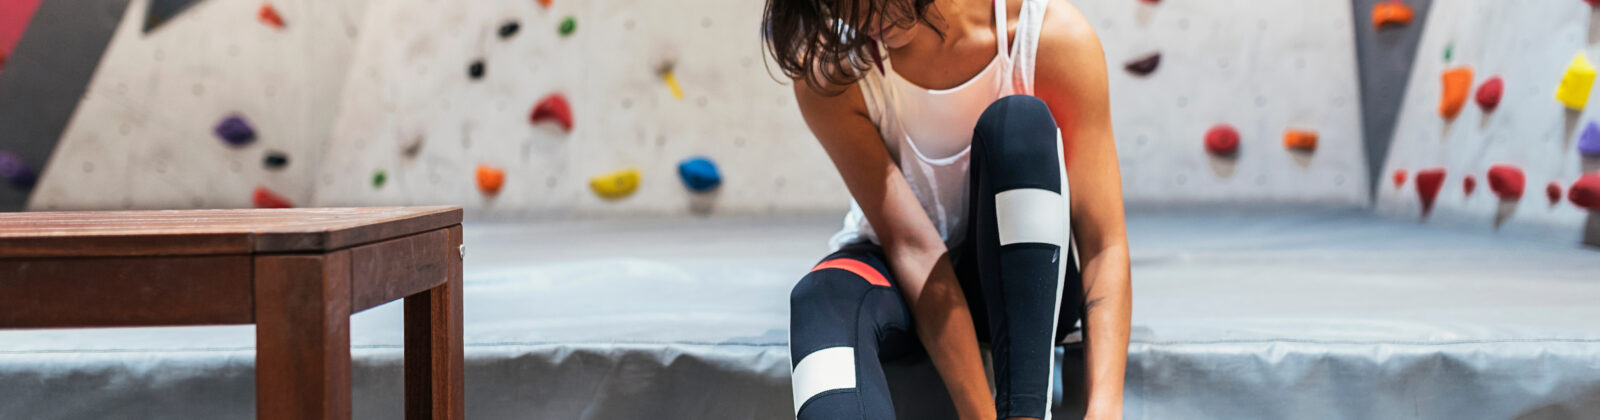 woman putting on climbing shoes